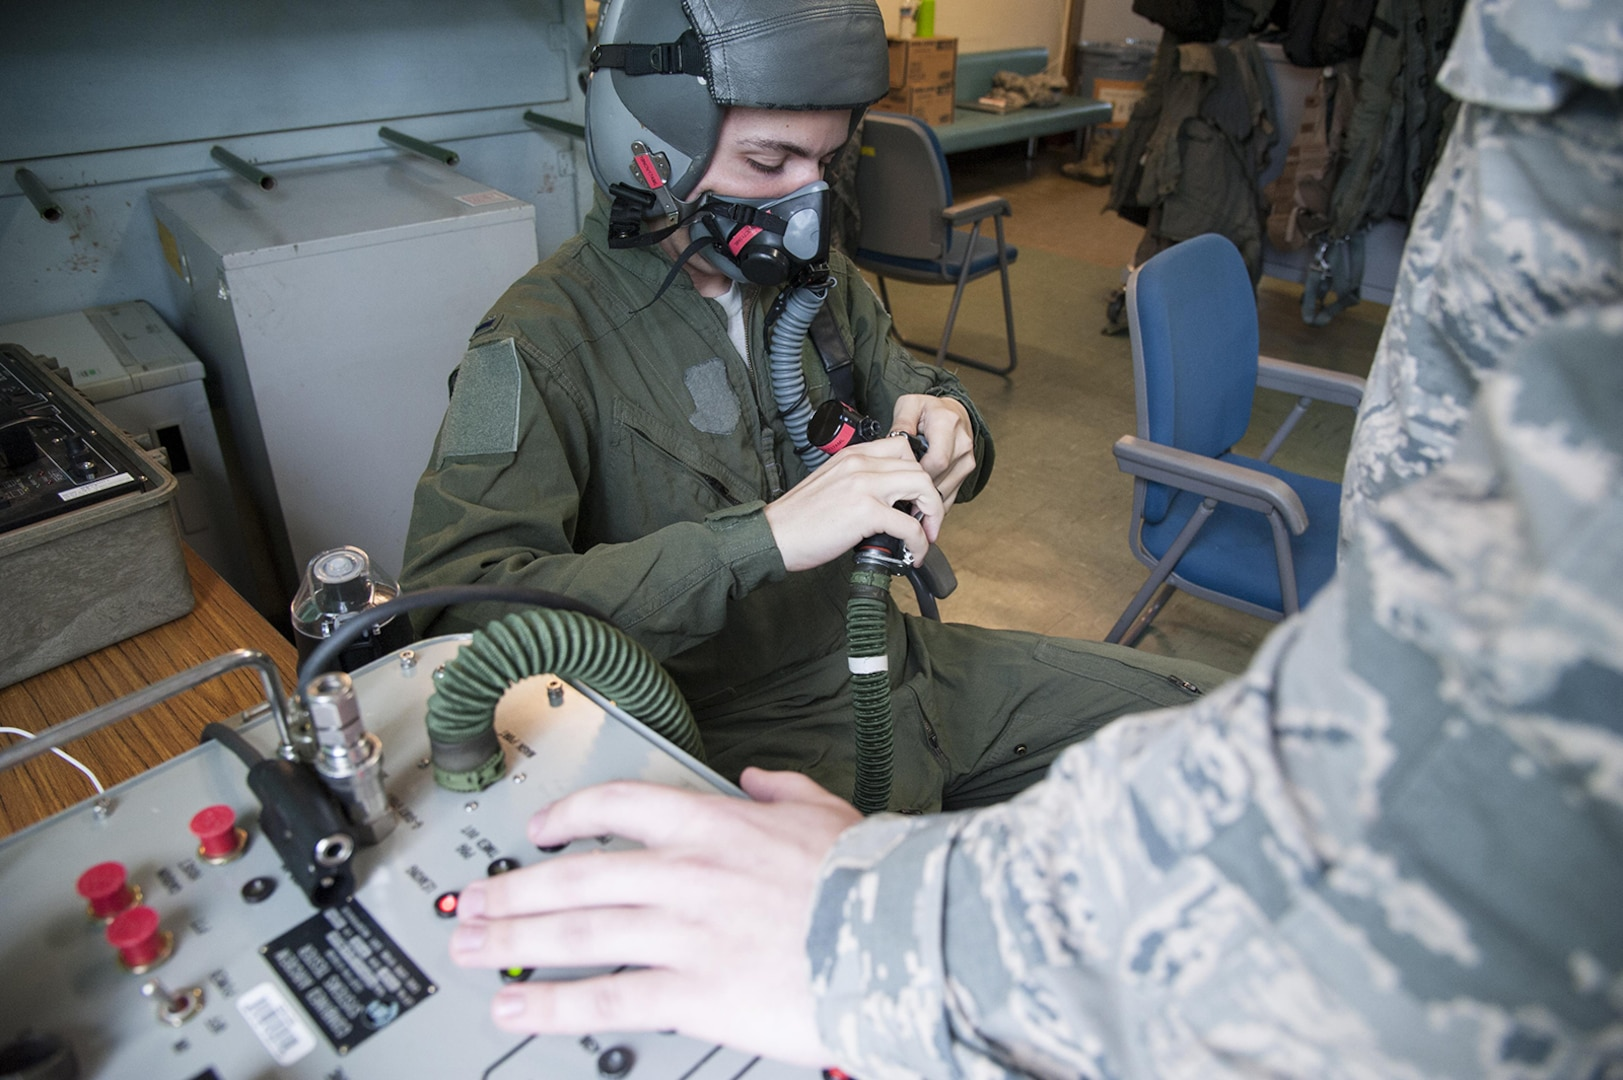 Airmen upholding Wild Weasel mission gain perspective